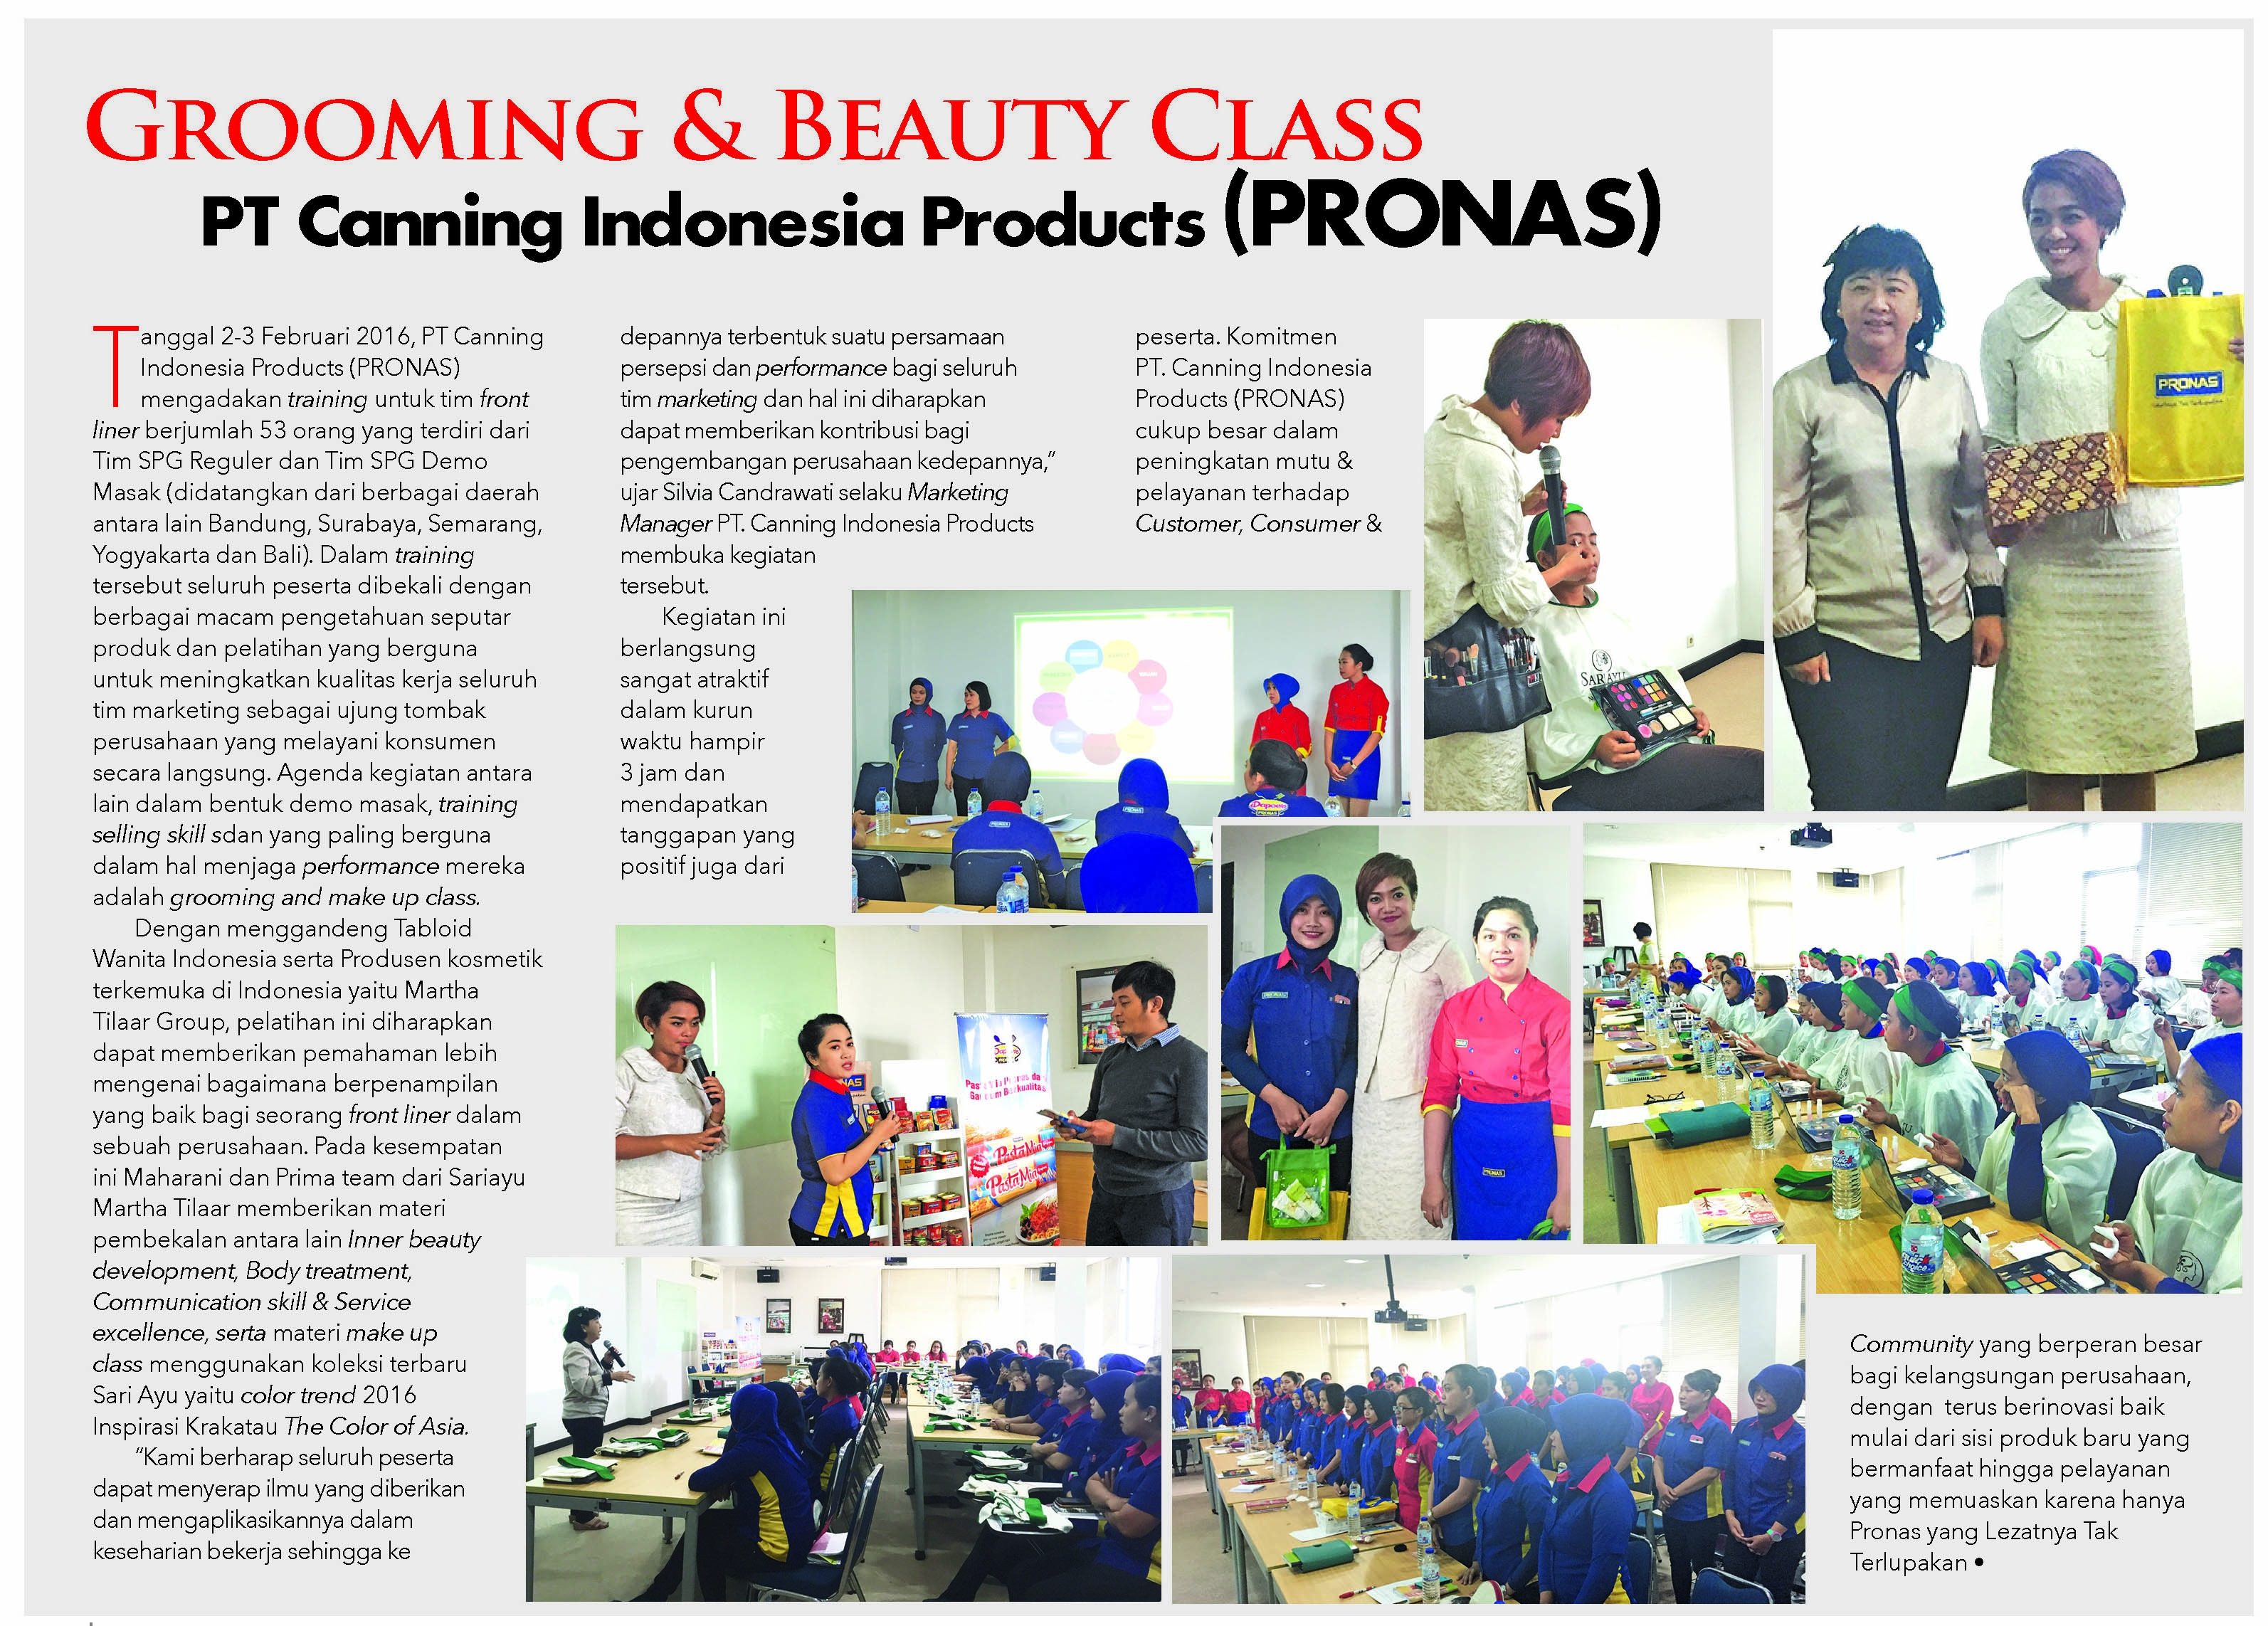 Beauty Class with Pronas - 3 Februari 2016